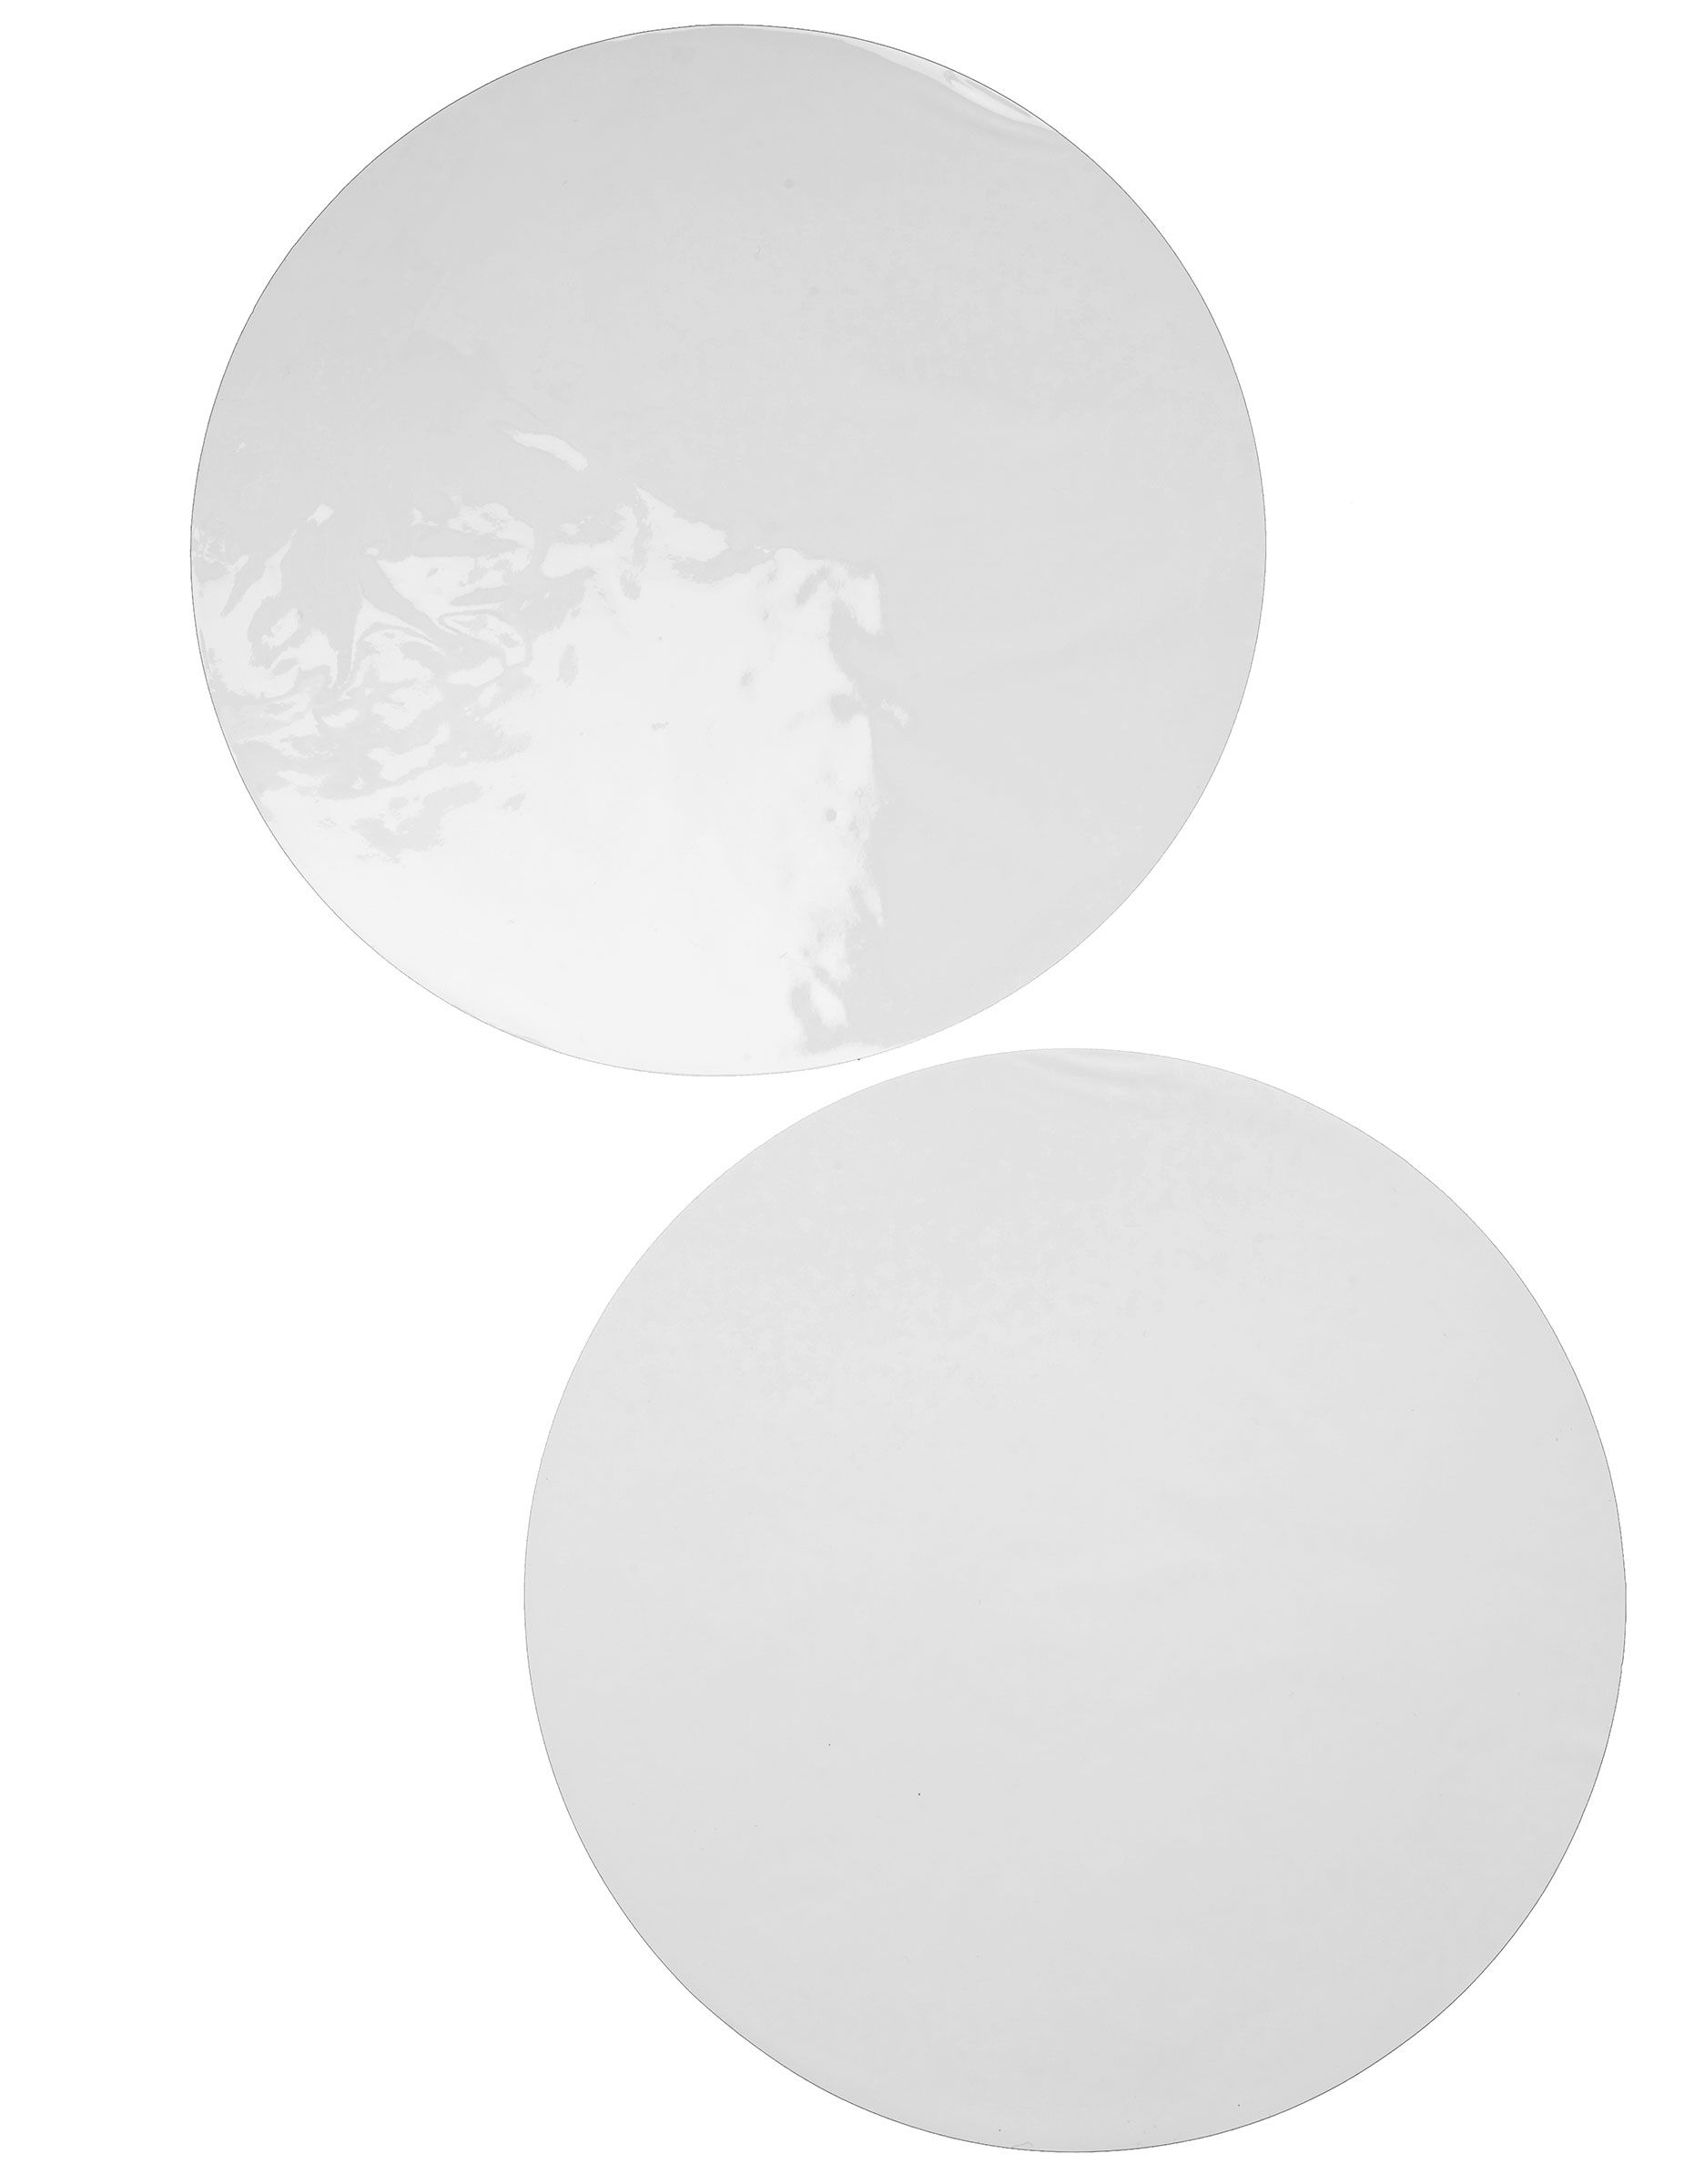 6 sets de table rond blanc d coration anniversaire et f tes th me sur vegaoo party. Black Bedroom Furniture Sets. Home Design Ideas